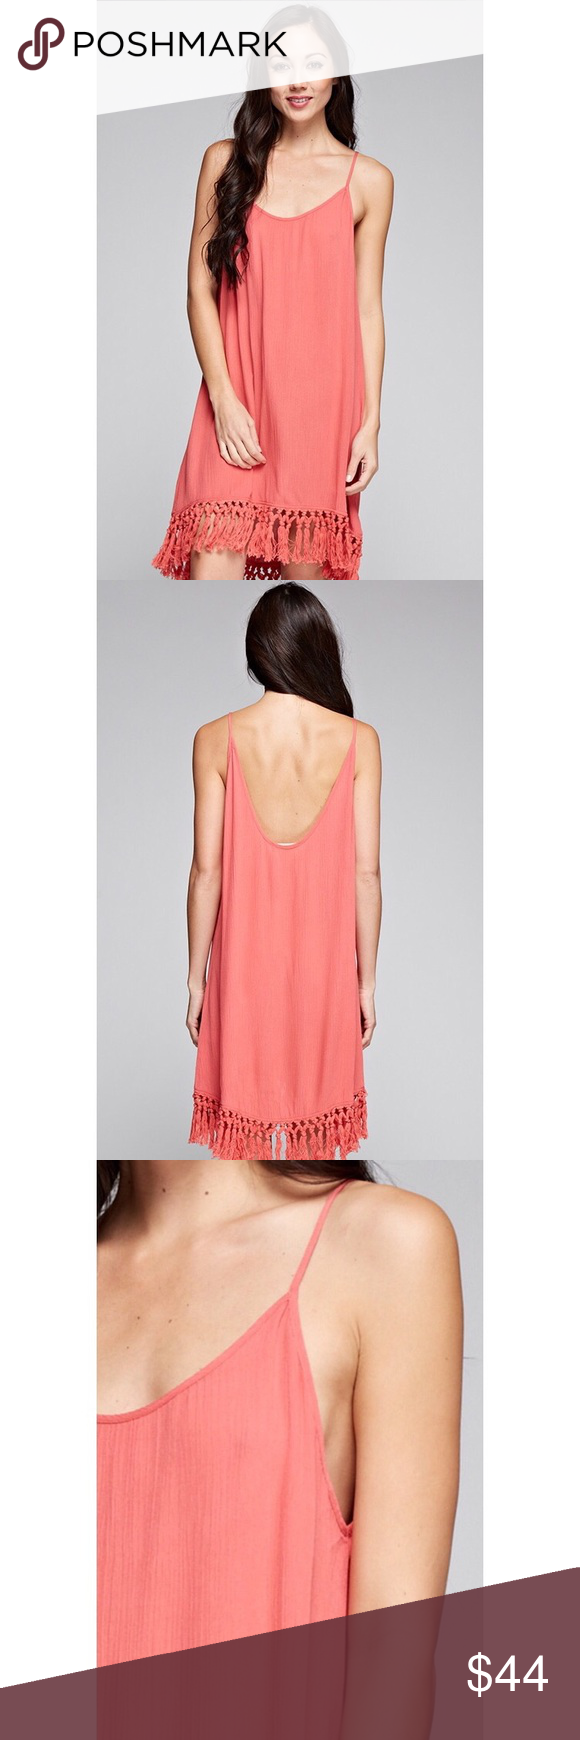 🆕 Best Of All Coral Fringe Dress The casually chic style of the Best of All C…